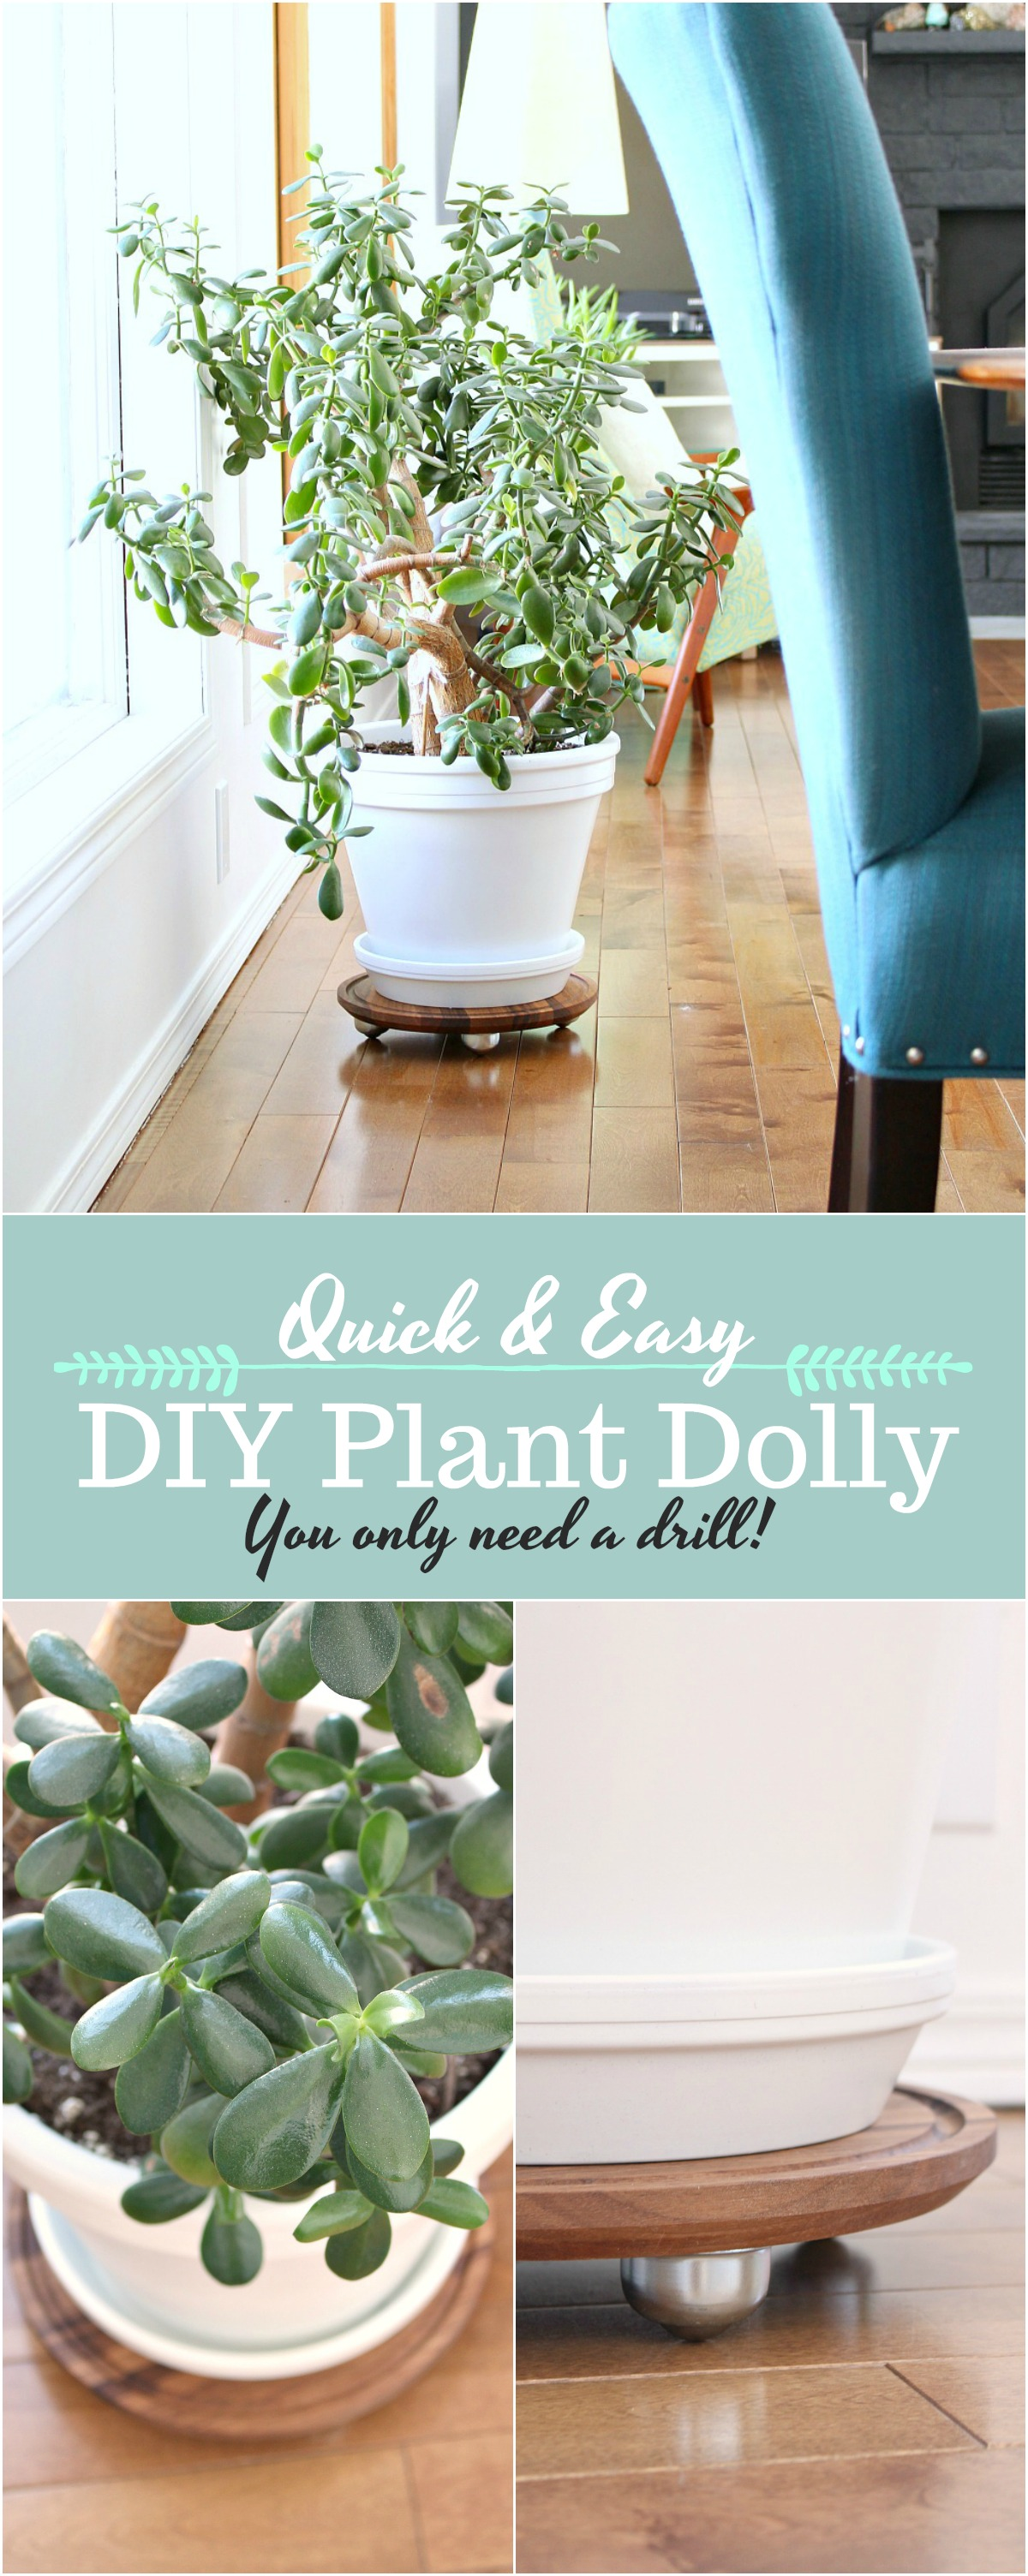 DIY plant dolly tutorial